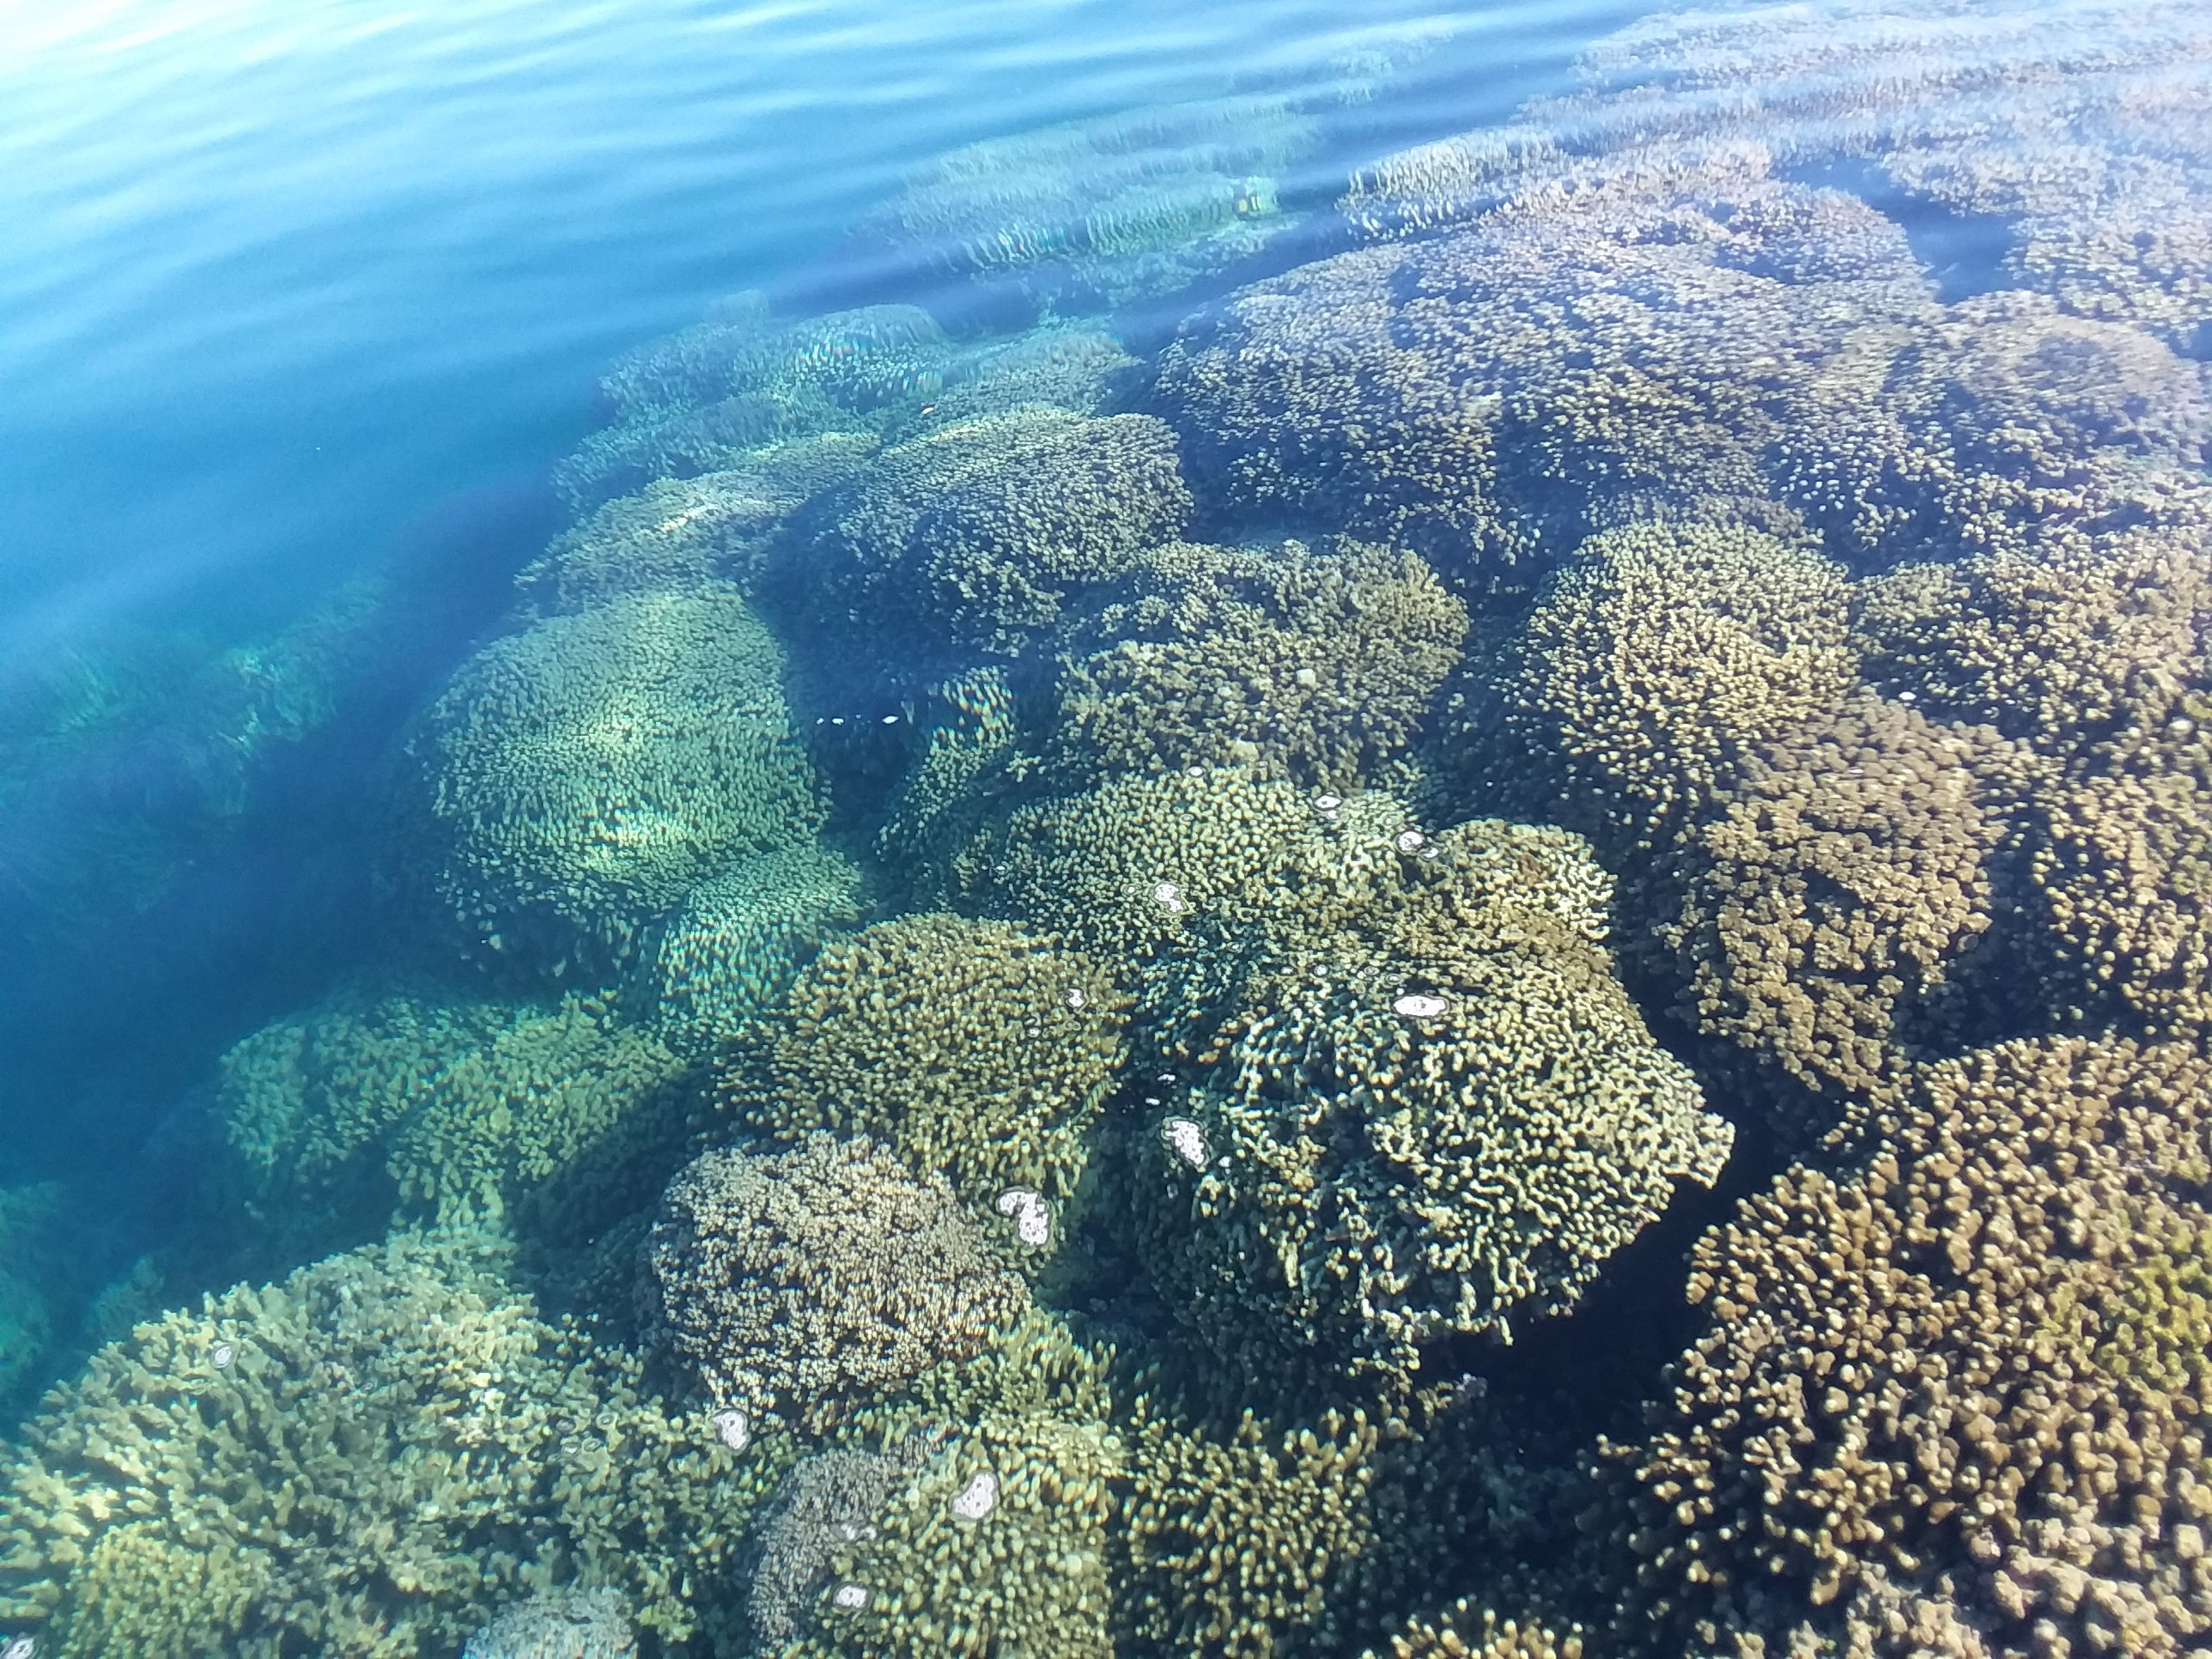 K-bay corals. Photo by Dr. Ty Roach, Hawaii Institute of Marine Biology.